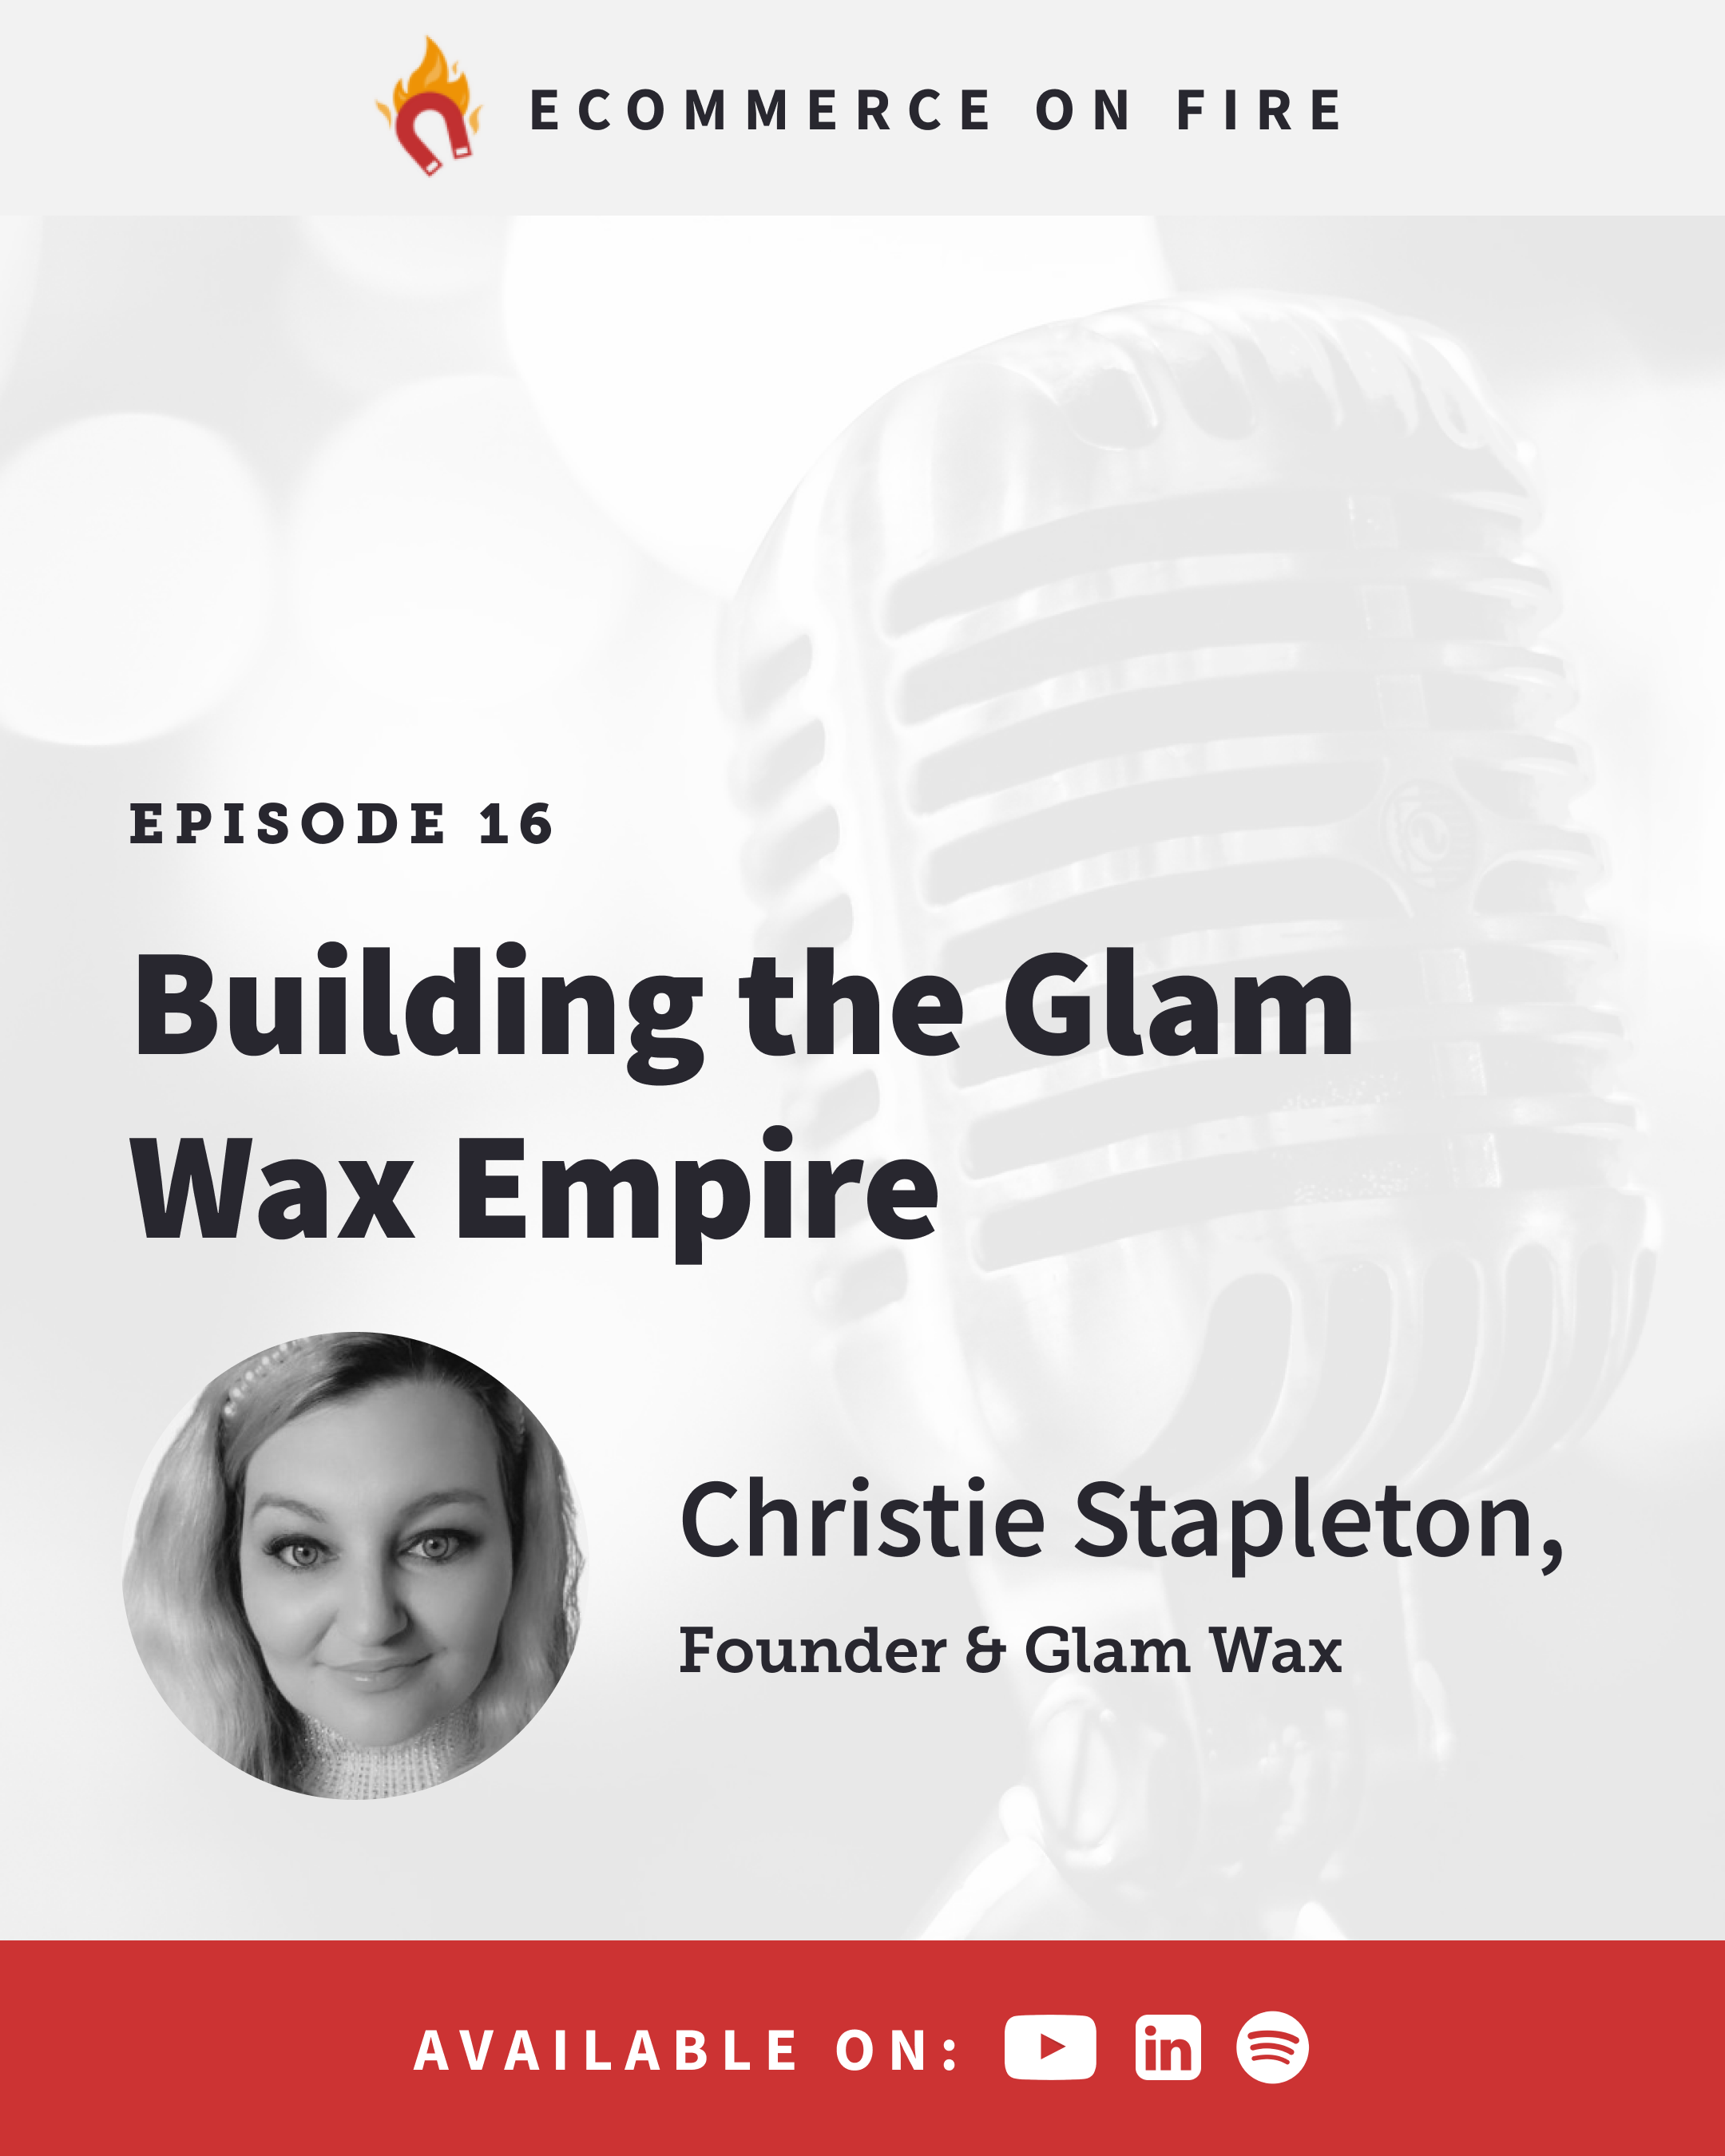 eCommerce on Fire Episode 16 🤑🛒🔥 - Building the Glam Wax Empire with CEO Christie Stapleton